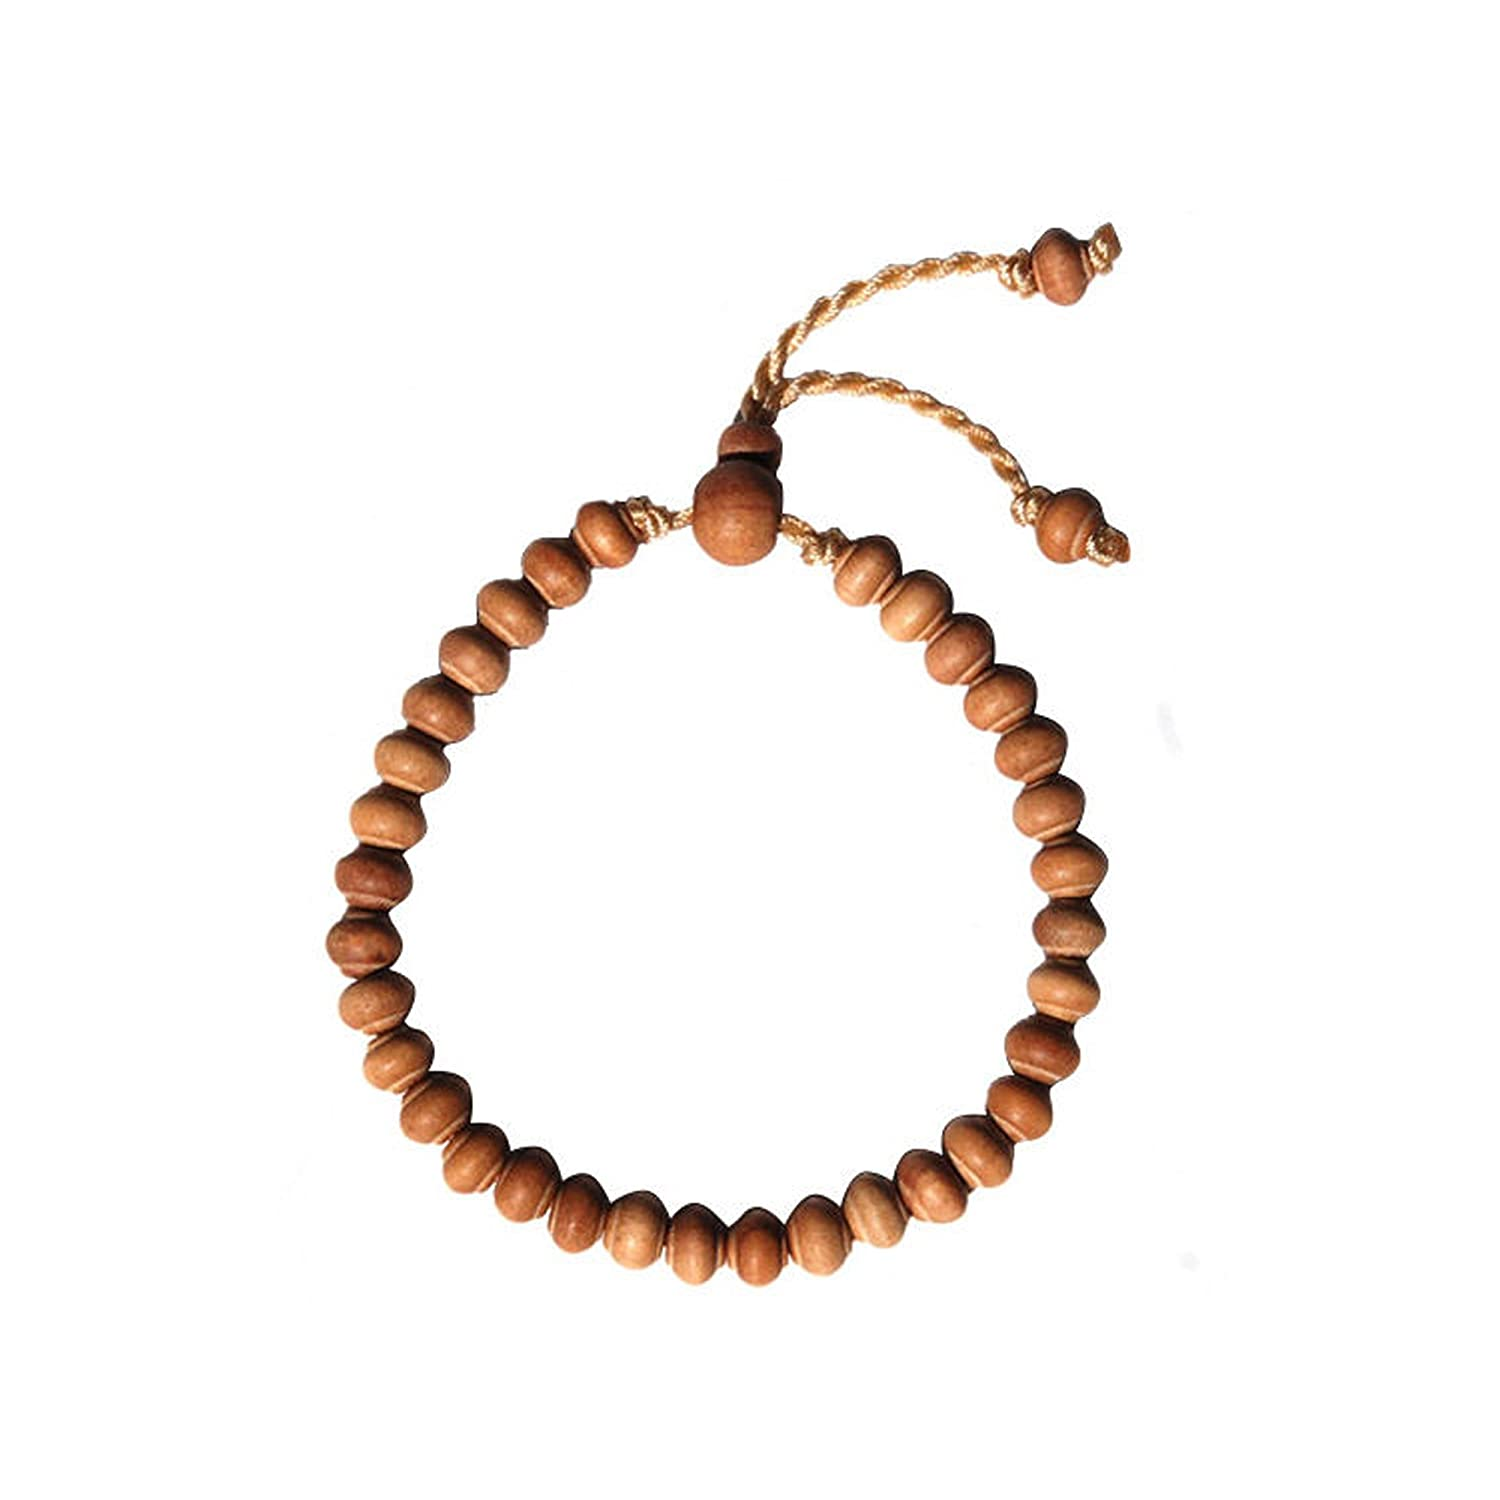 Small Hand-Made Adjustable Contoured-Bead Exotic Sandalwood Tasbih Bracelet 33-Beads for 7-8.5 inch Wrists TheTasbih